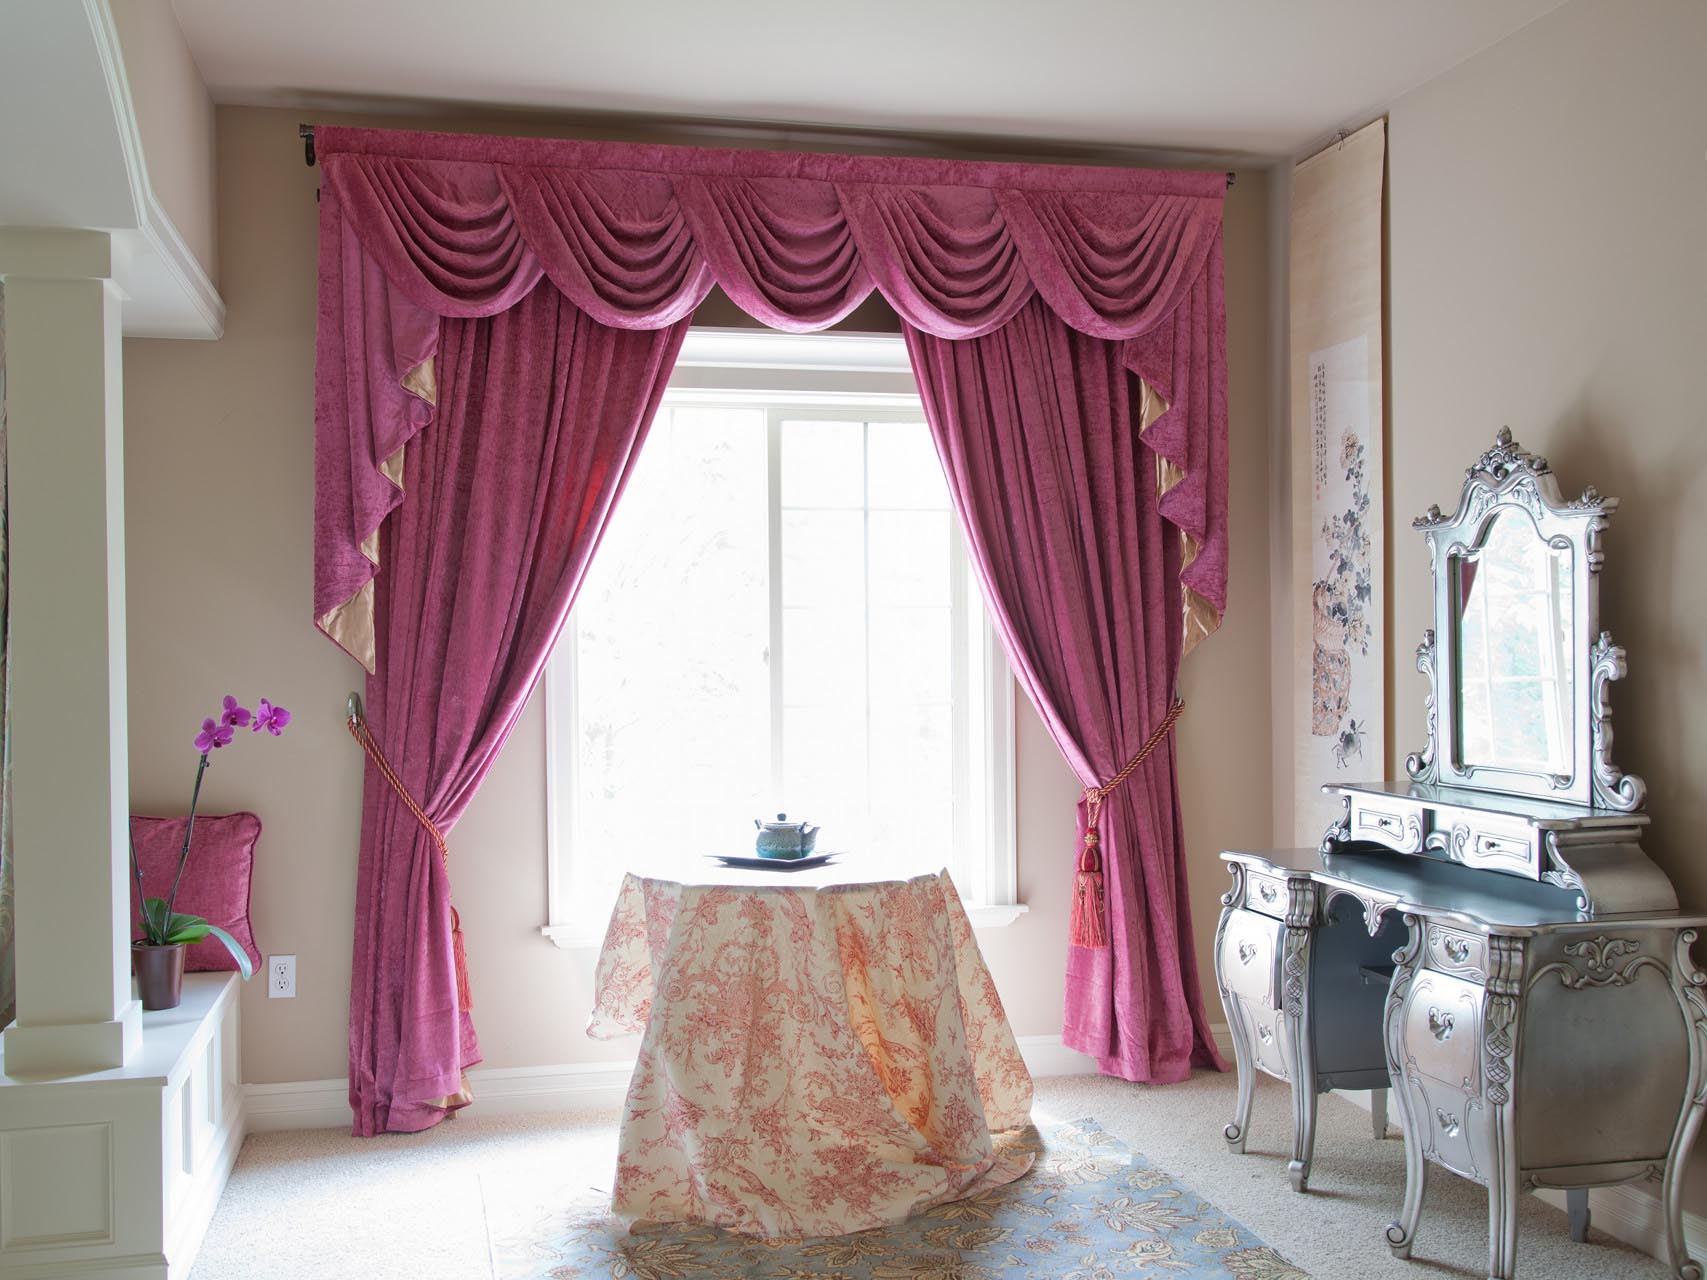 Valance And Swag Curtains | Window Treatments Design Ideas